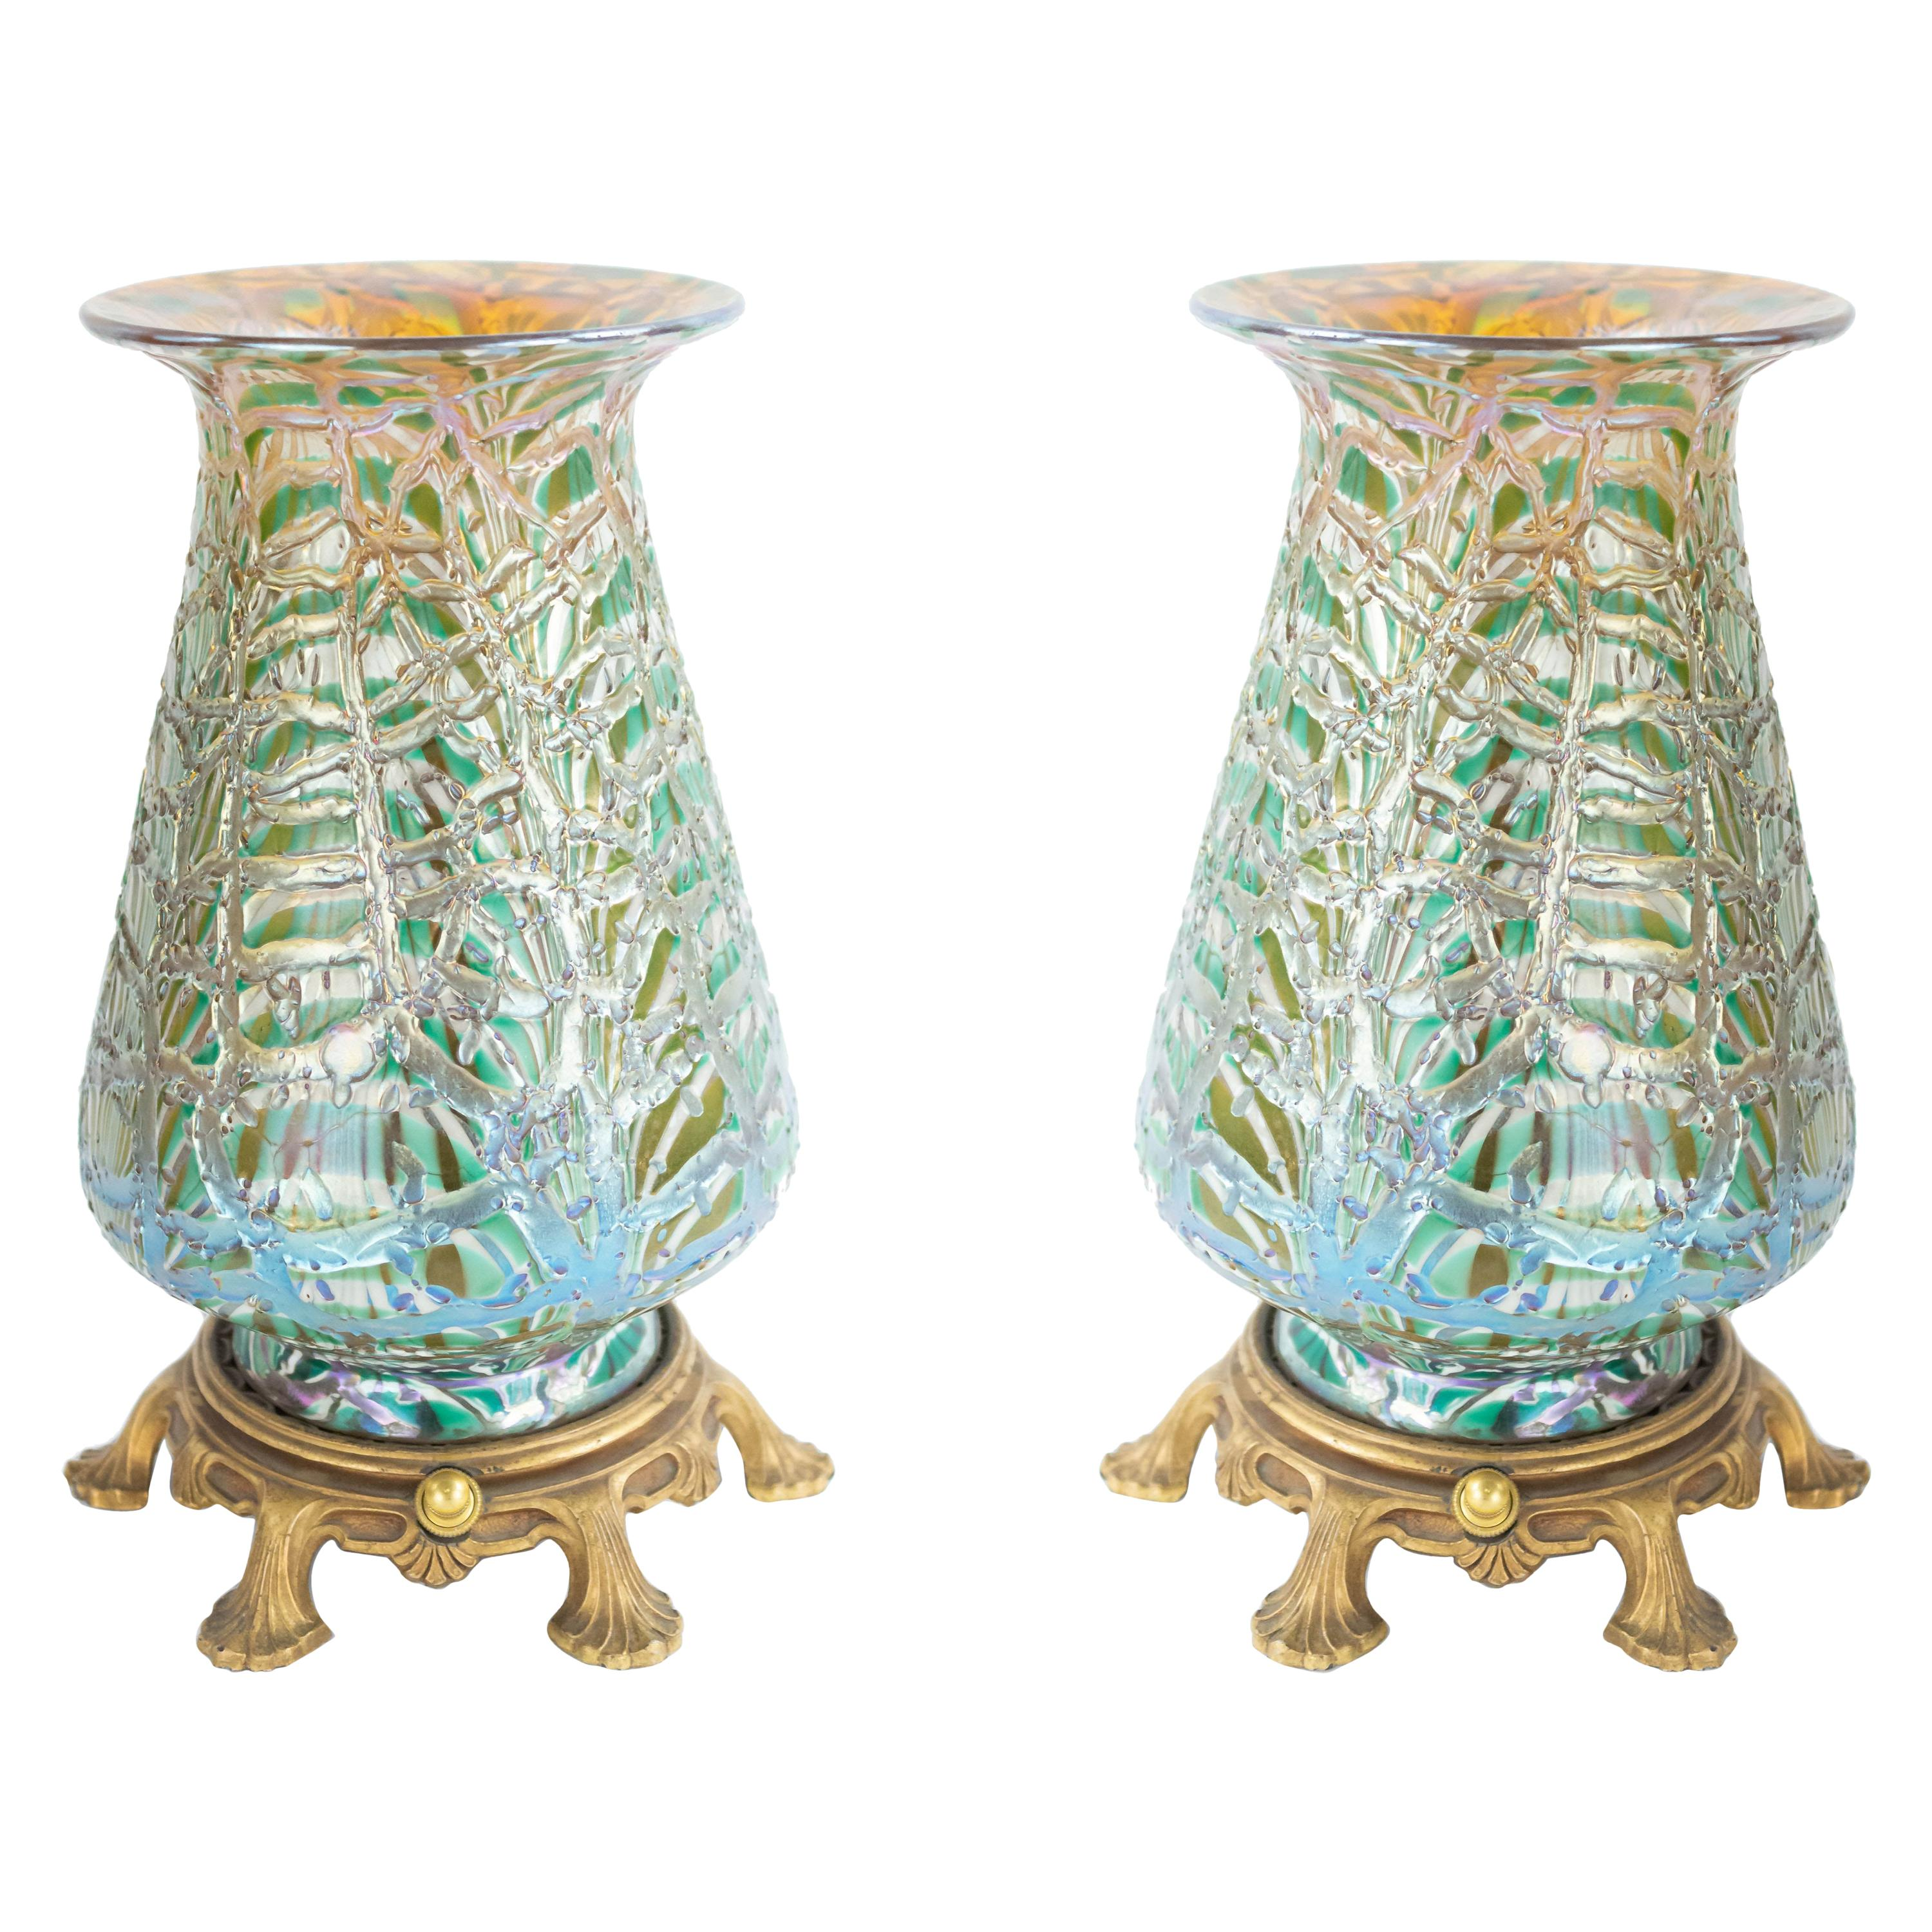 American Art Nouveau Durand Green Glass Table Lamps